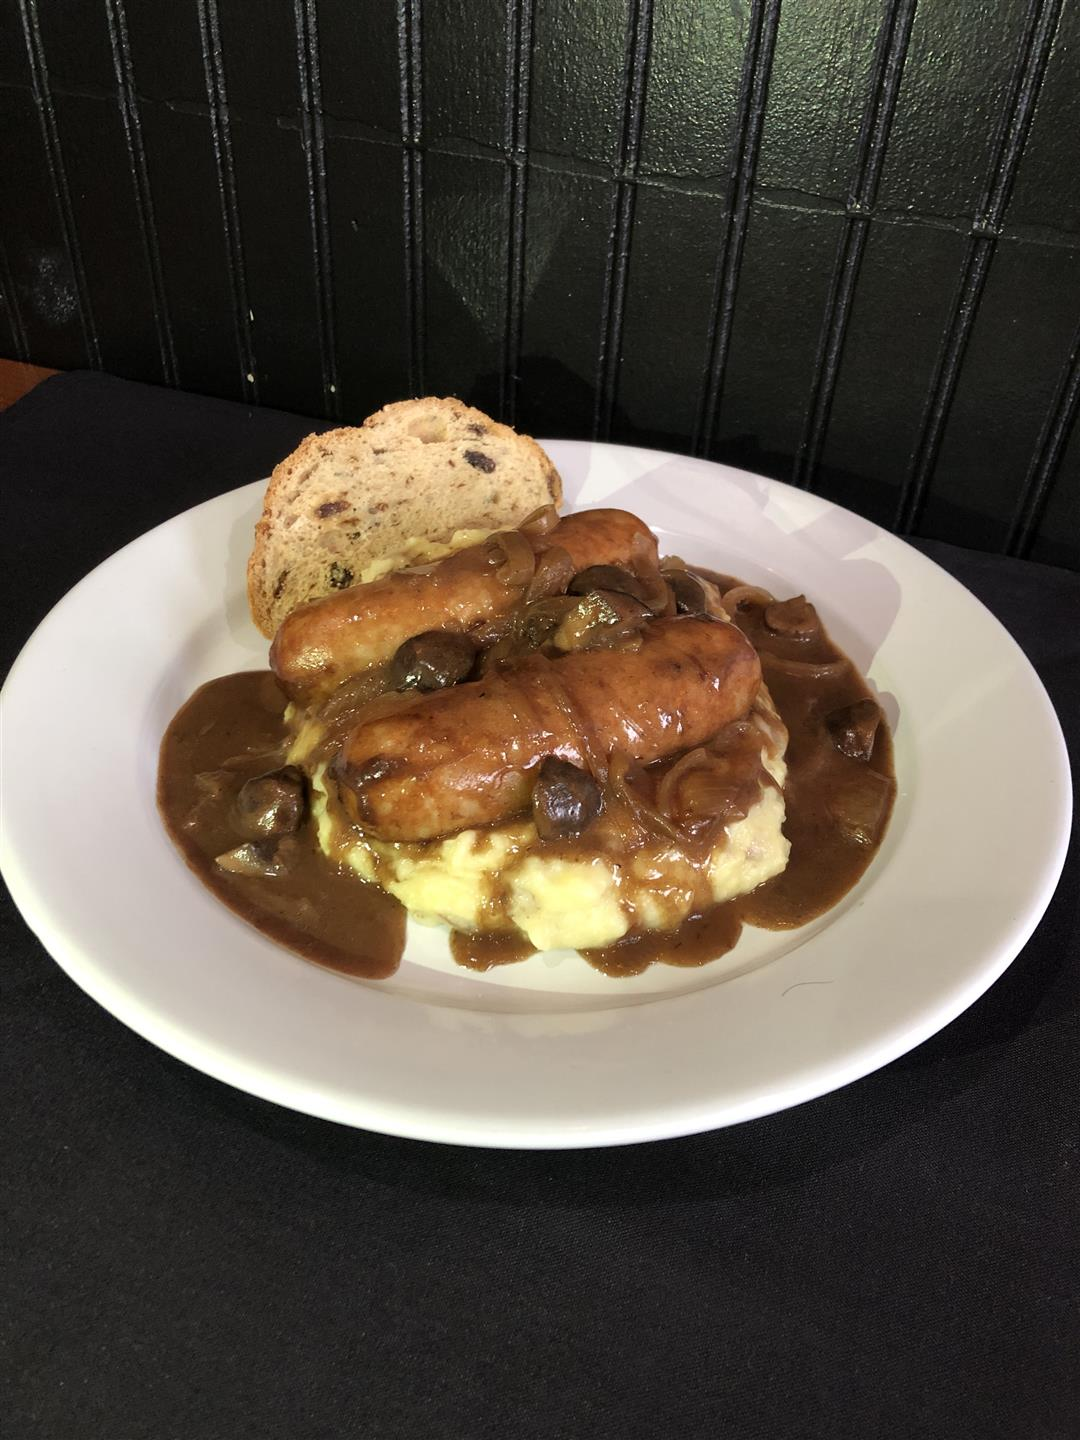 a plate of bangers and mash with irish soda bread